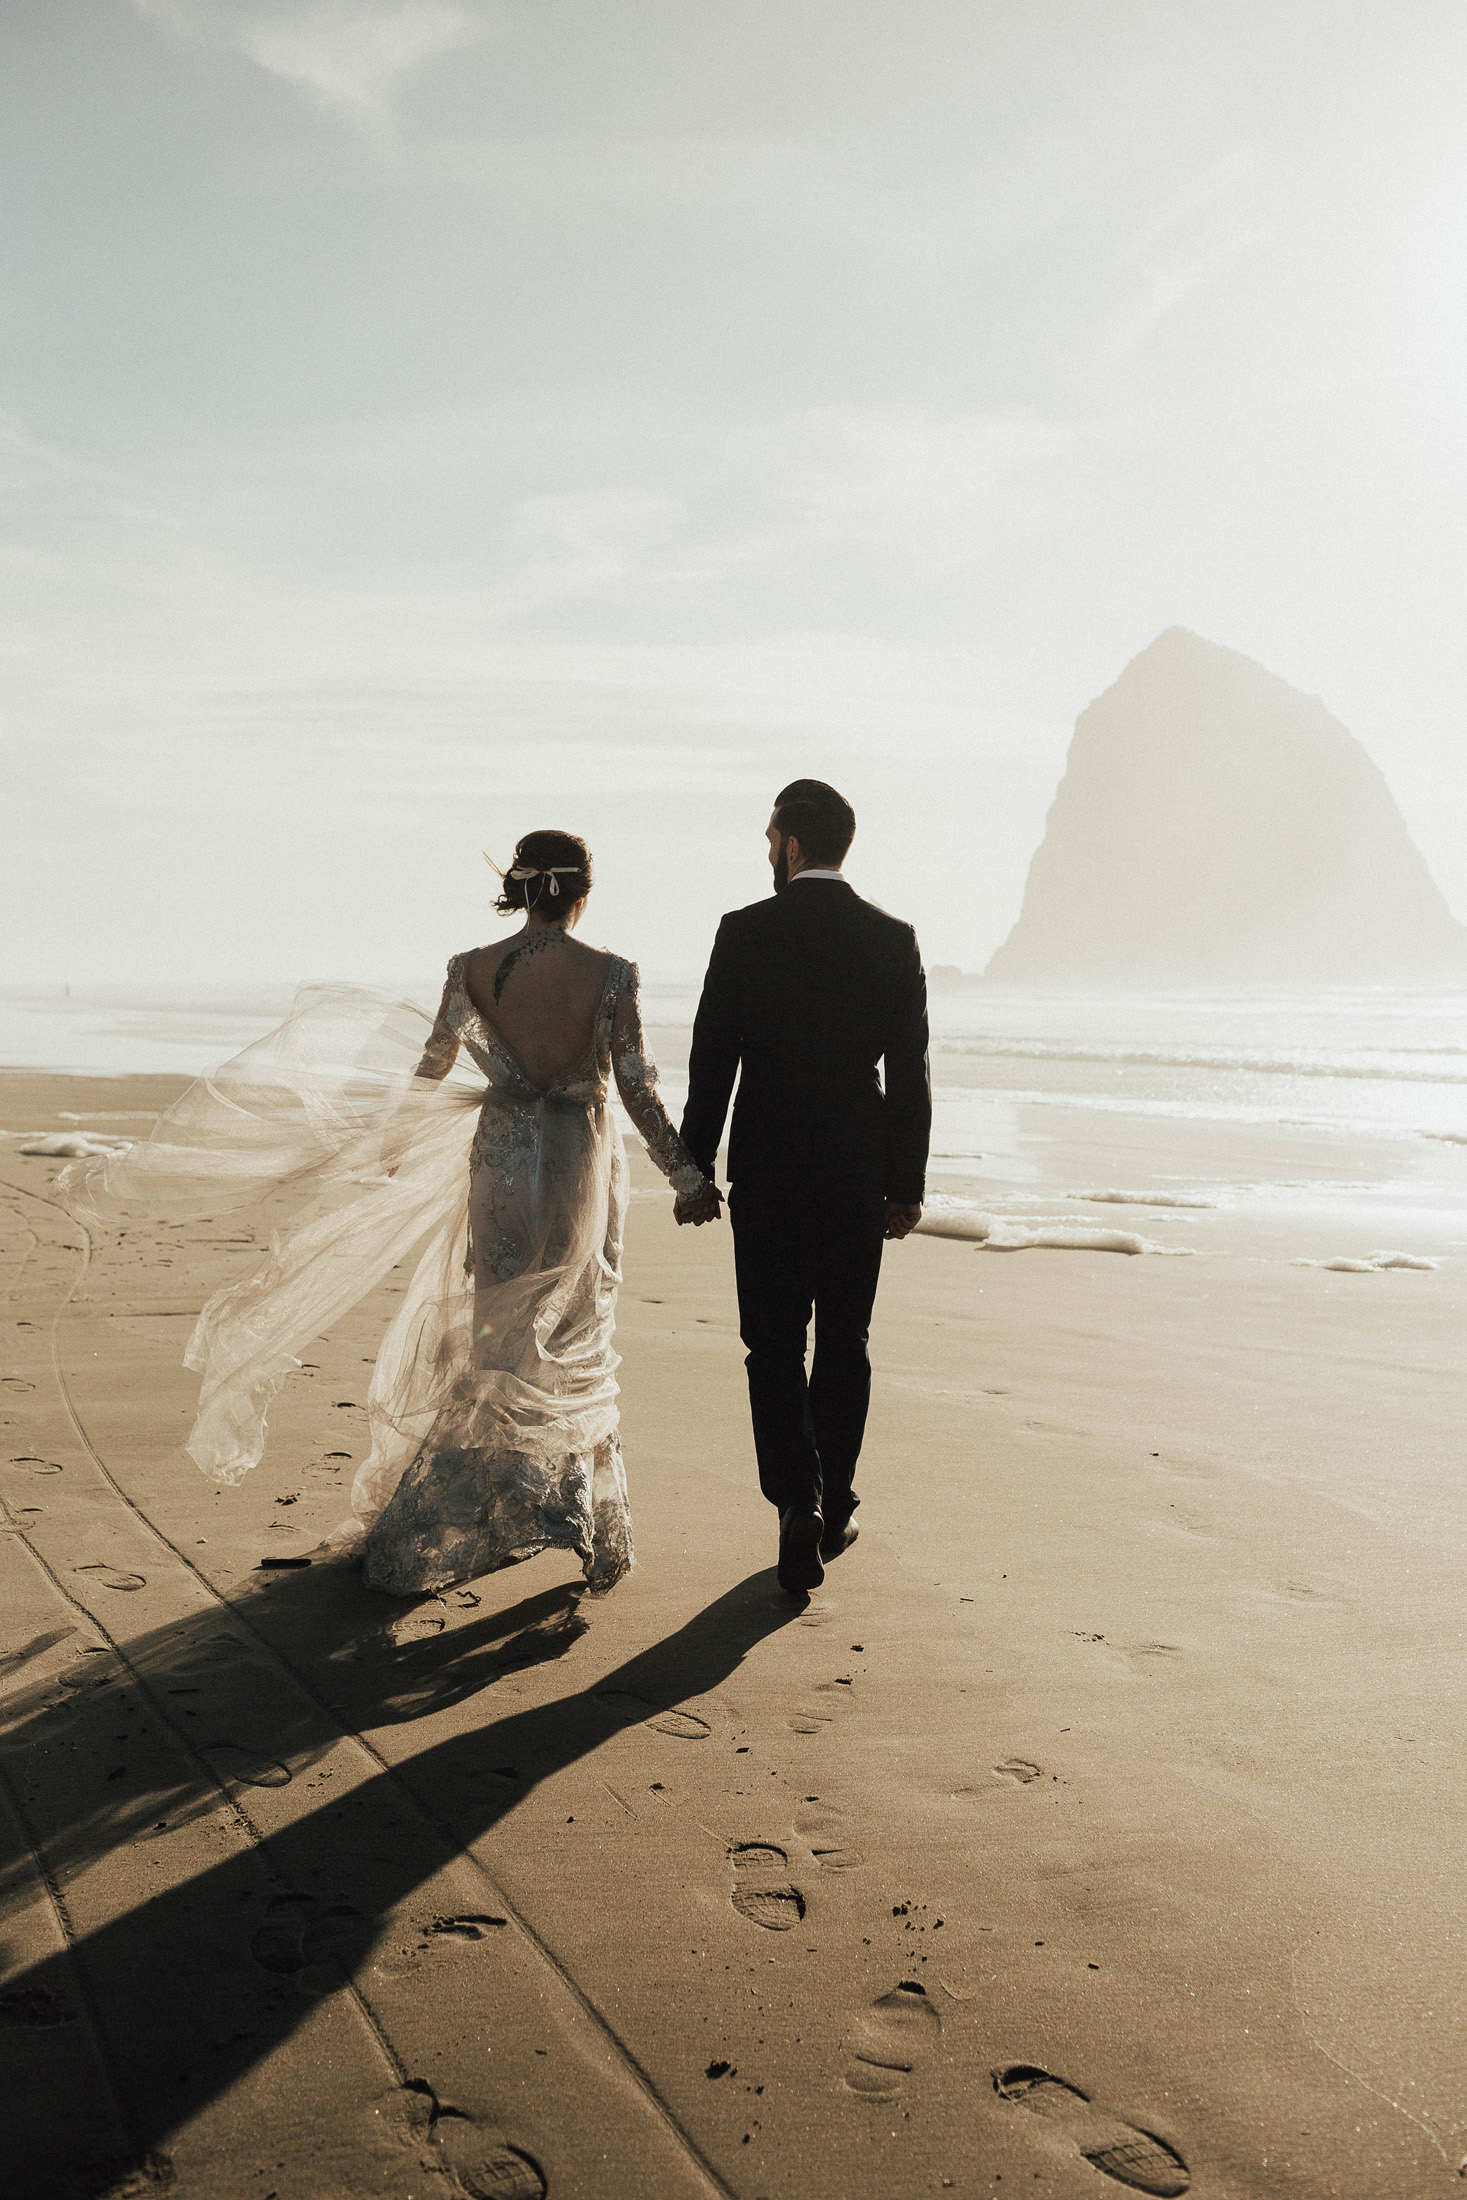 Cannon Beach Elopement - Michelle Larmand Photography - 099.jpg